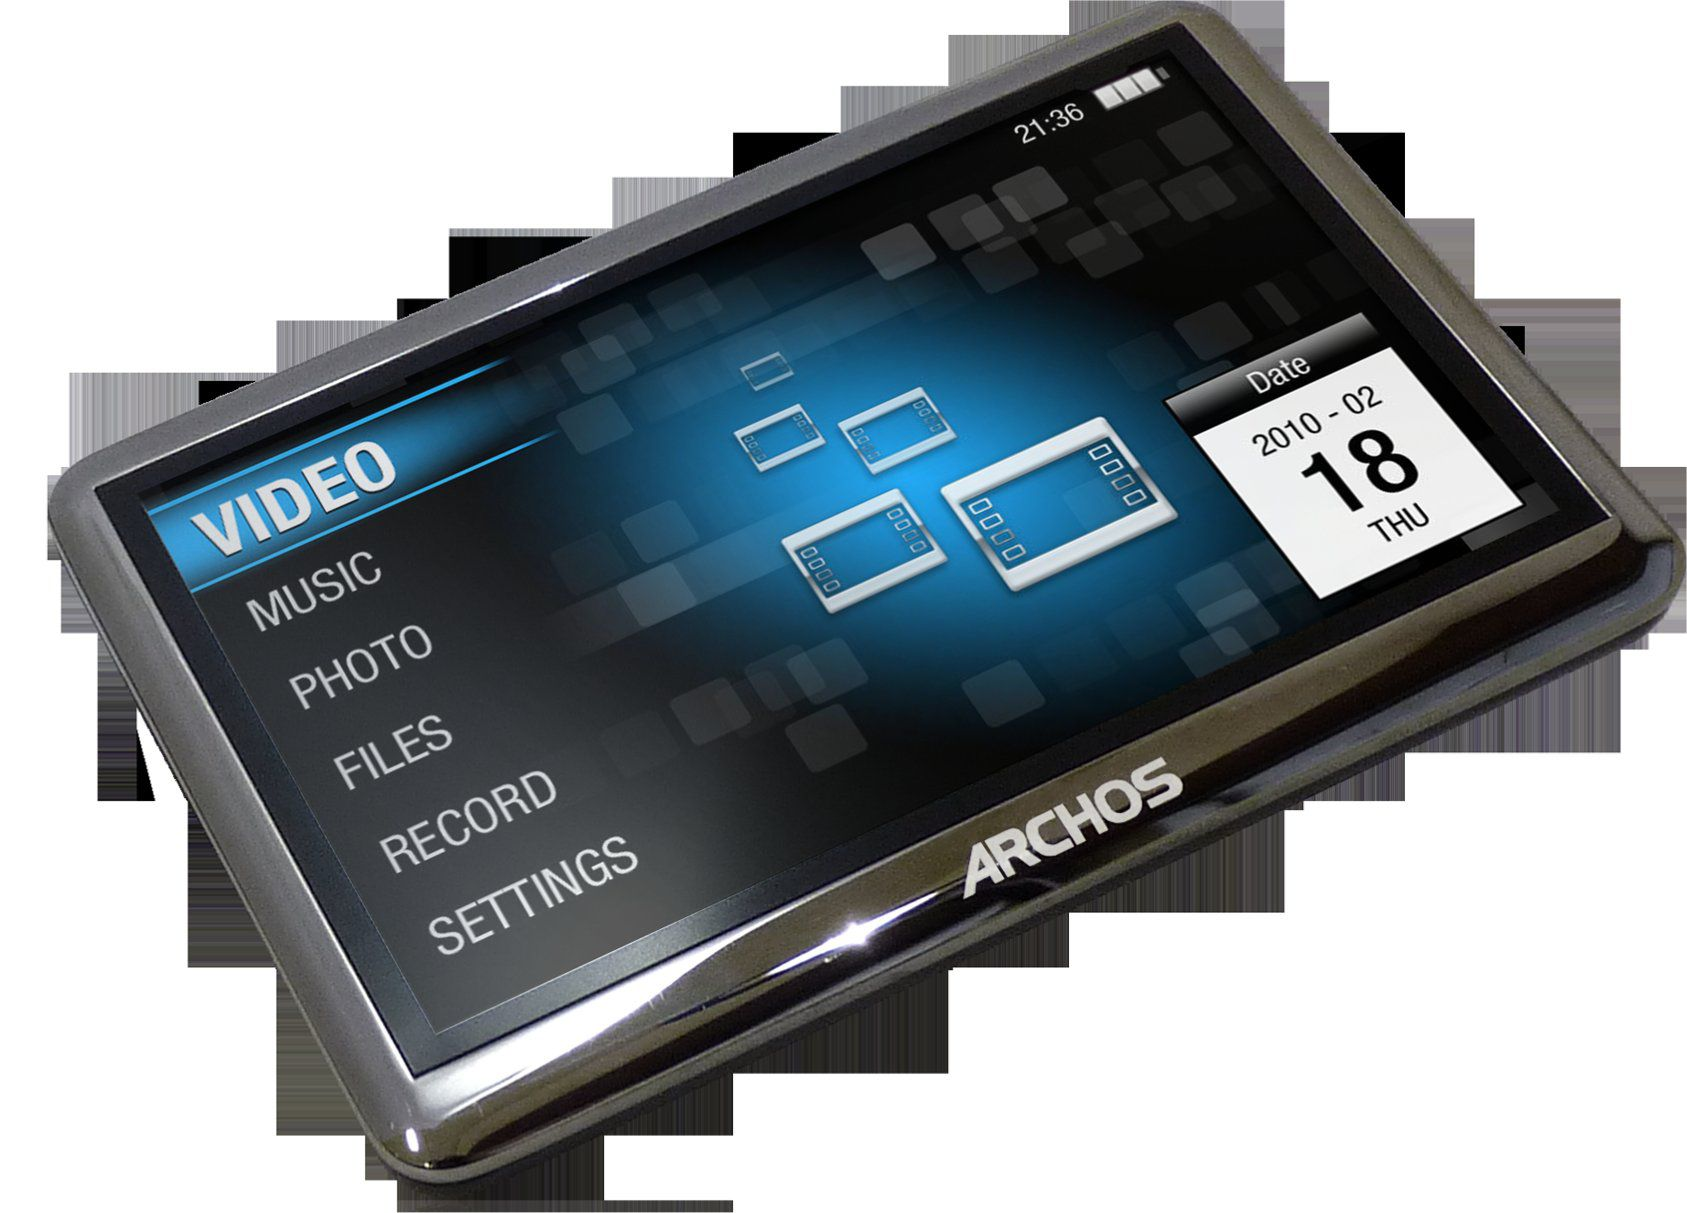 With the MPeg 4 video format, video can be played on various equipment such as computers, telephones or players such as this Archos 4-3 Vision model. © Archos